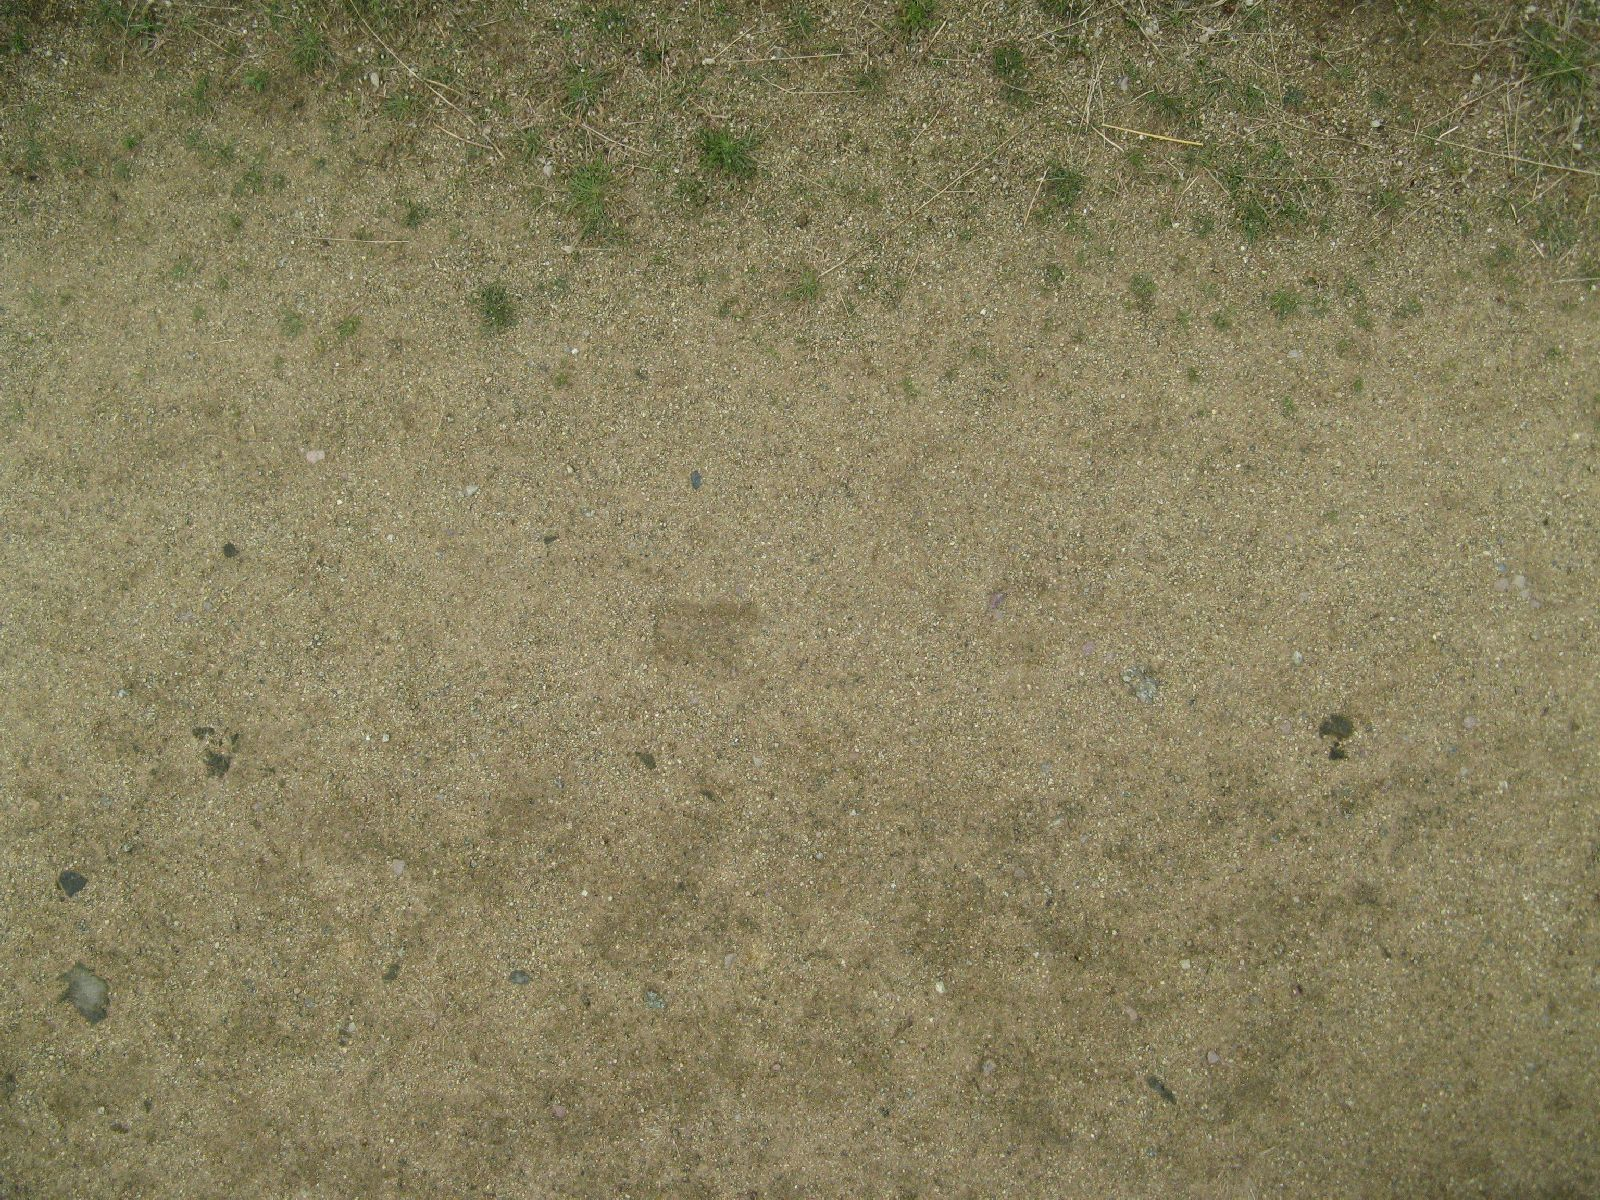 Ground-Nature_Texture_B_2122